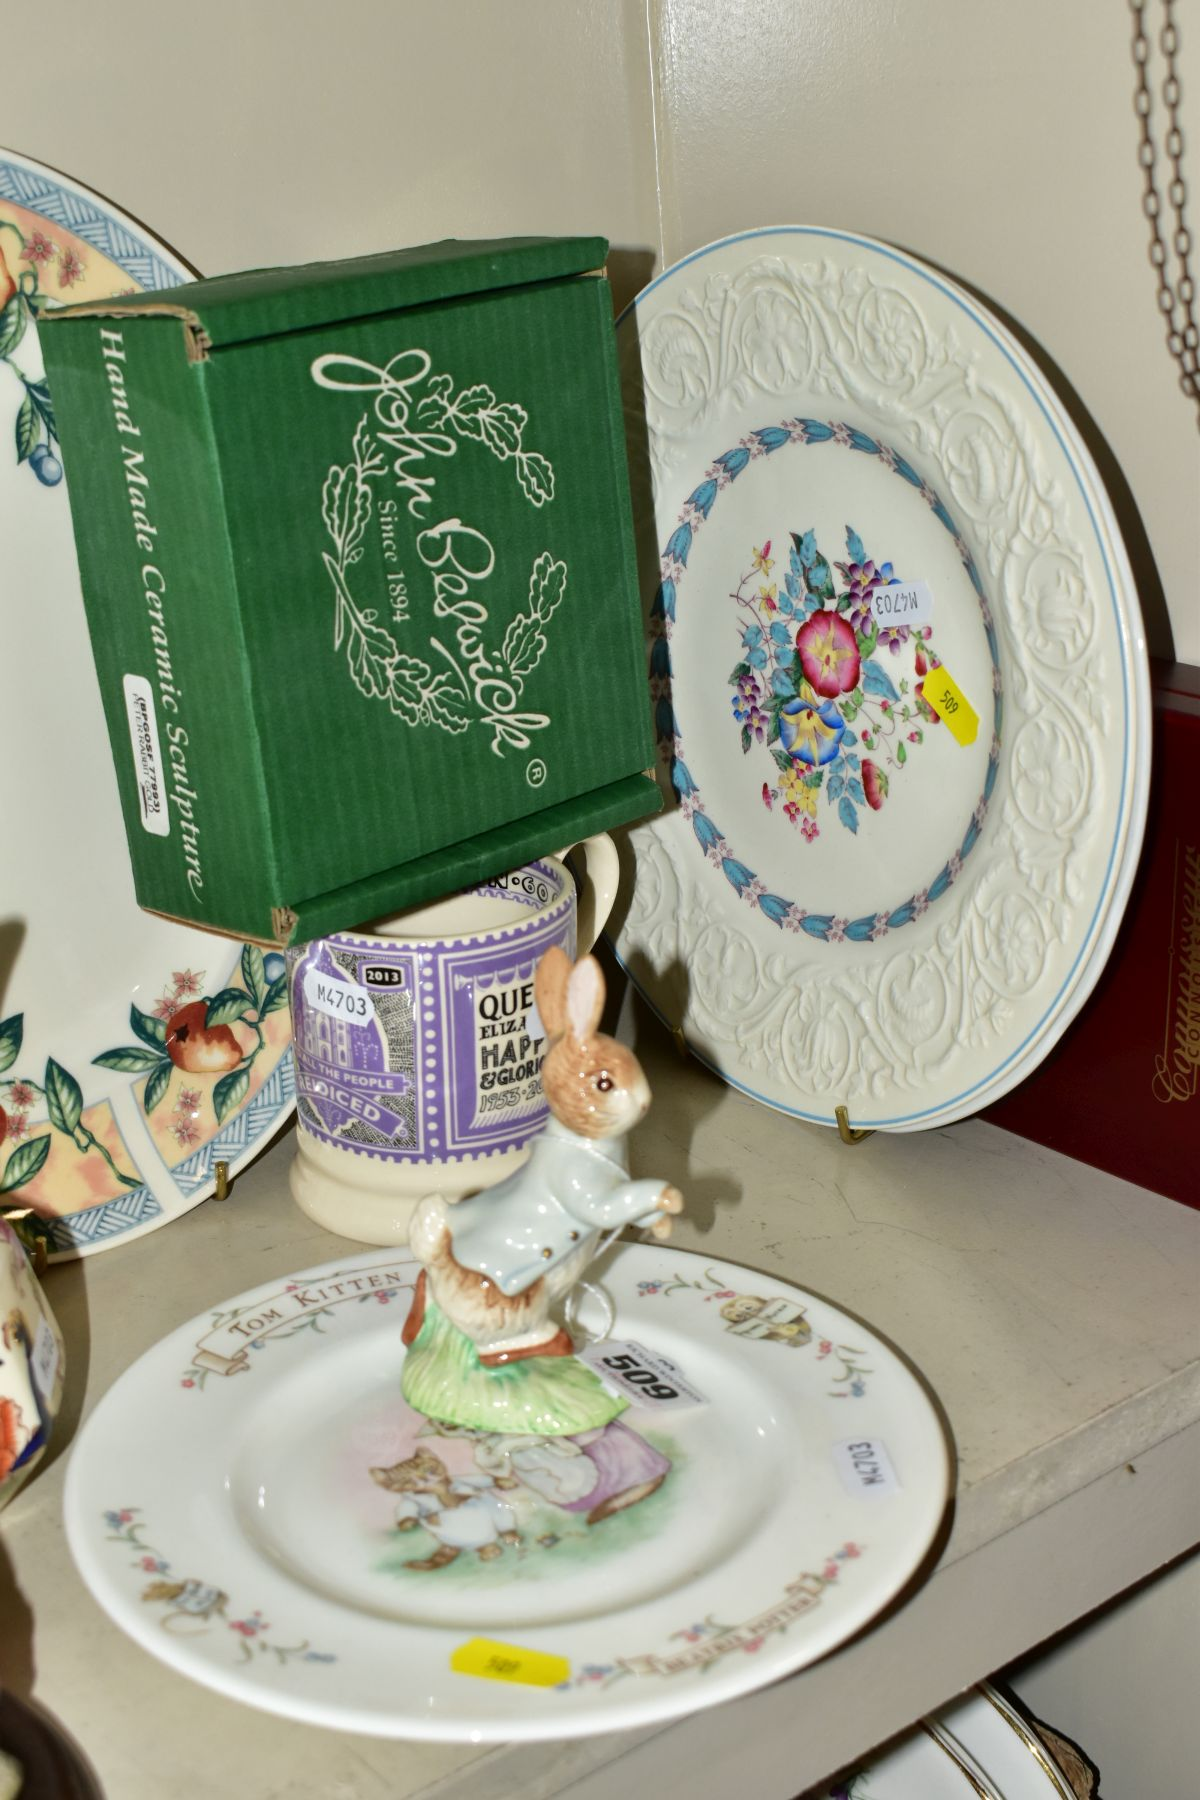 DECORATIVE CERAMICS ETC, to include a boxed Beswick Peter Rabbit, Royal Albert 'Tom Kitten' plate, - Image 10 of 11